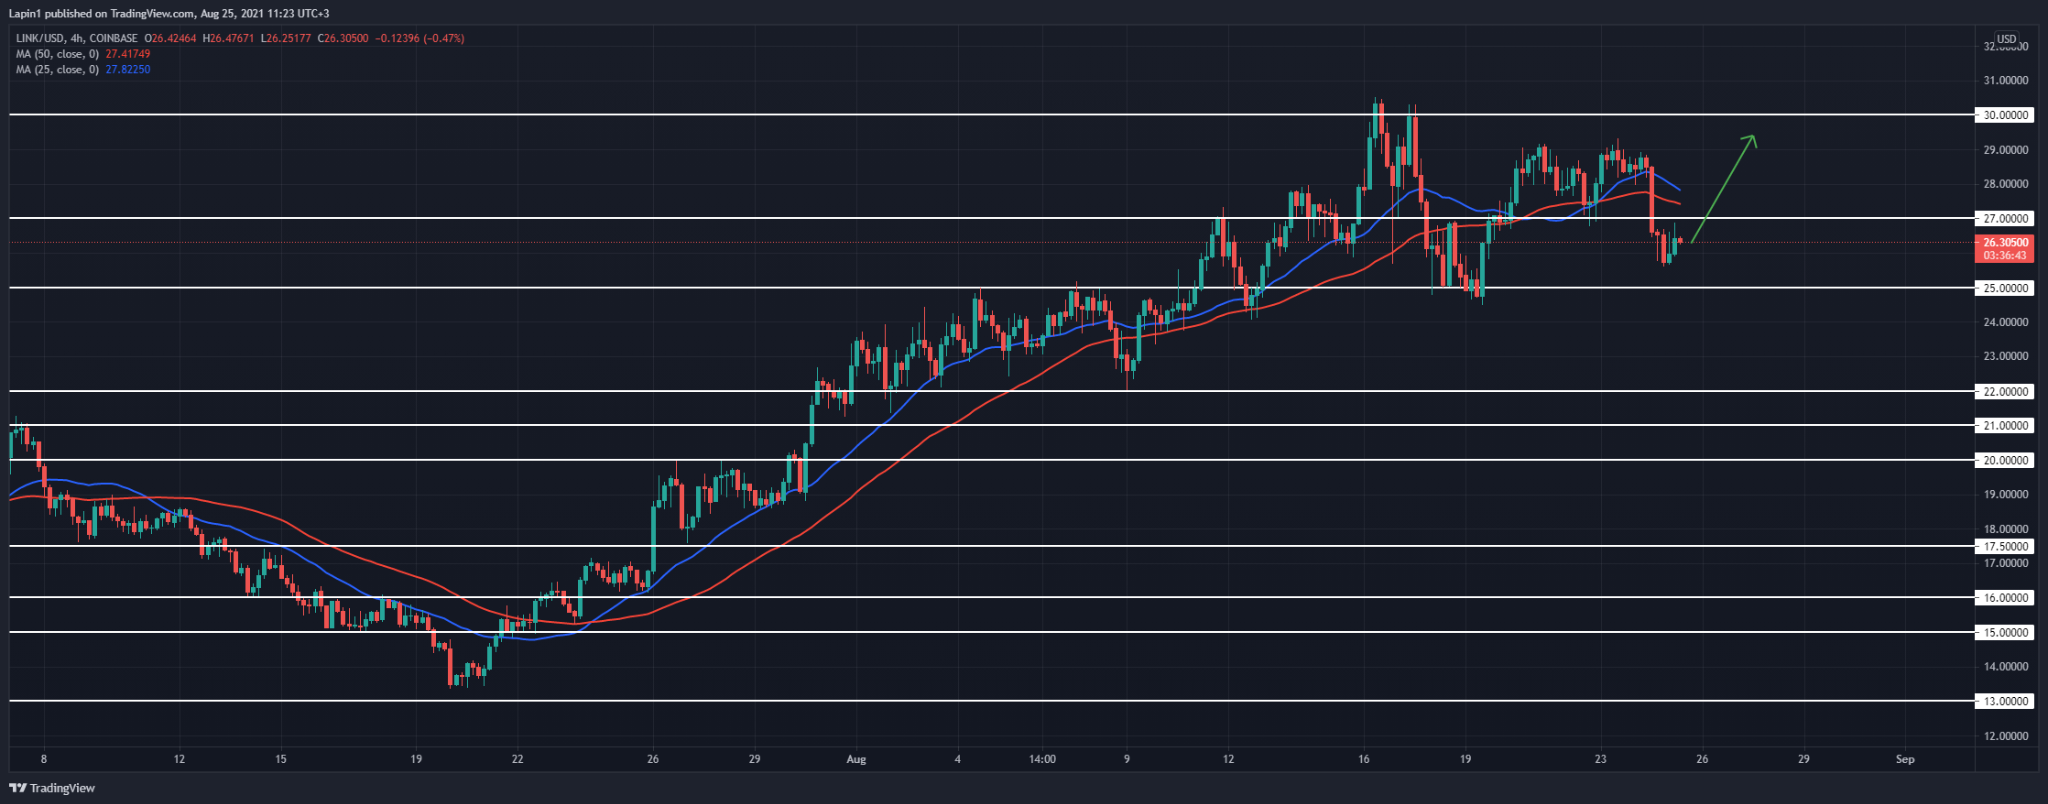 Chainlink Price Analysis: LINK moves below $27, ready to set another higher low?